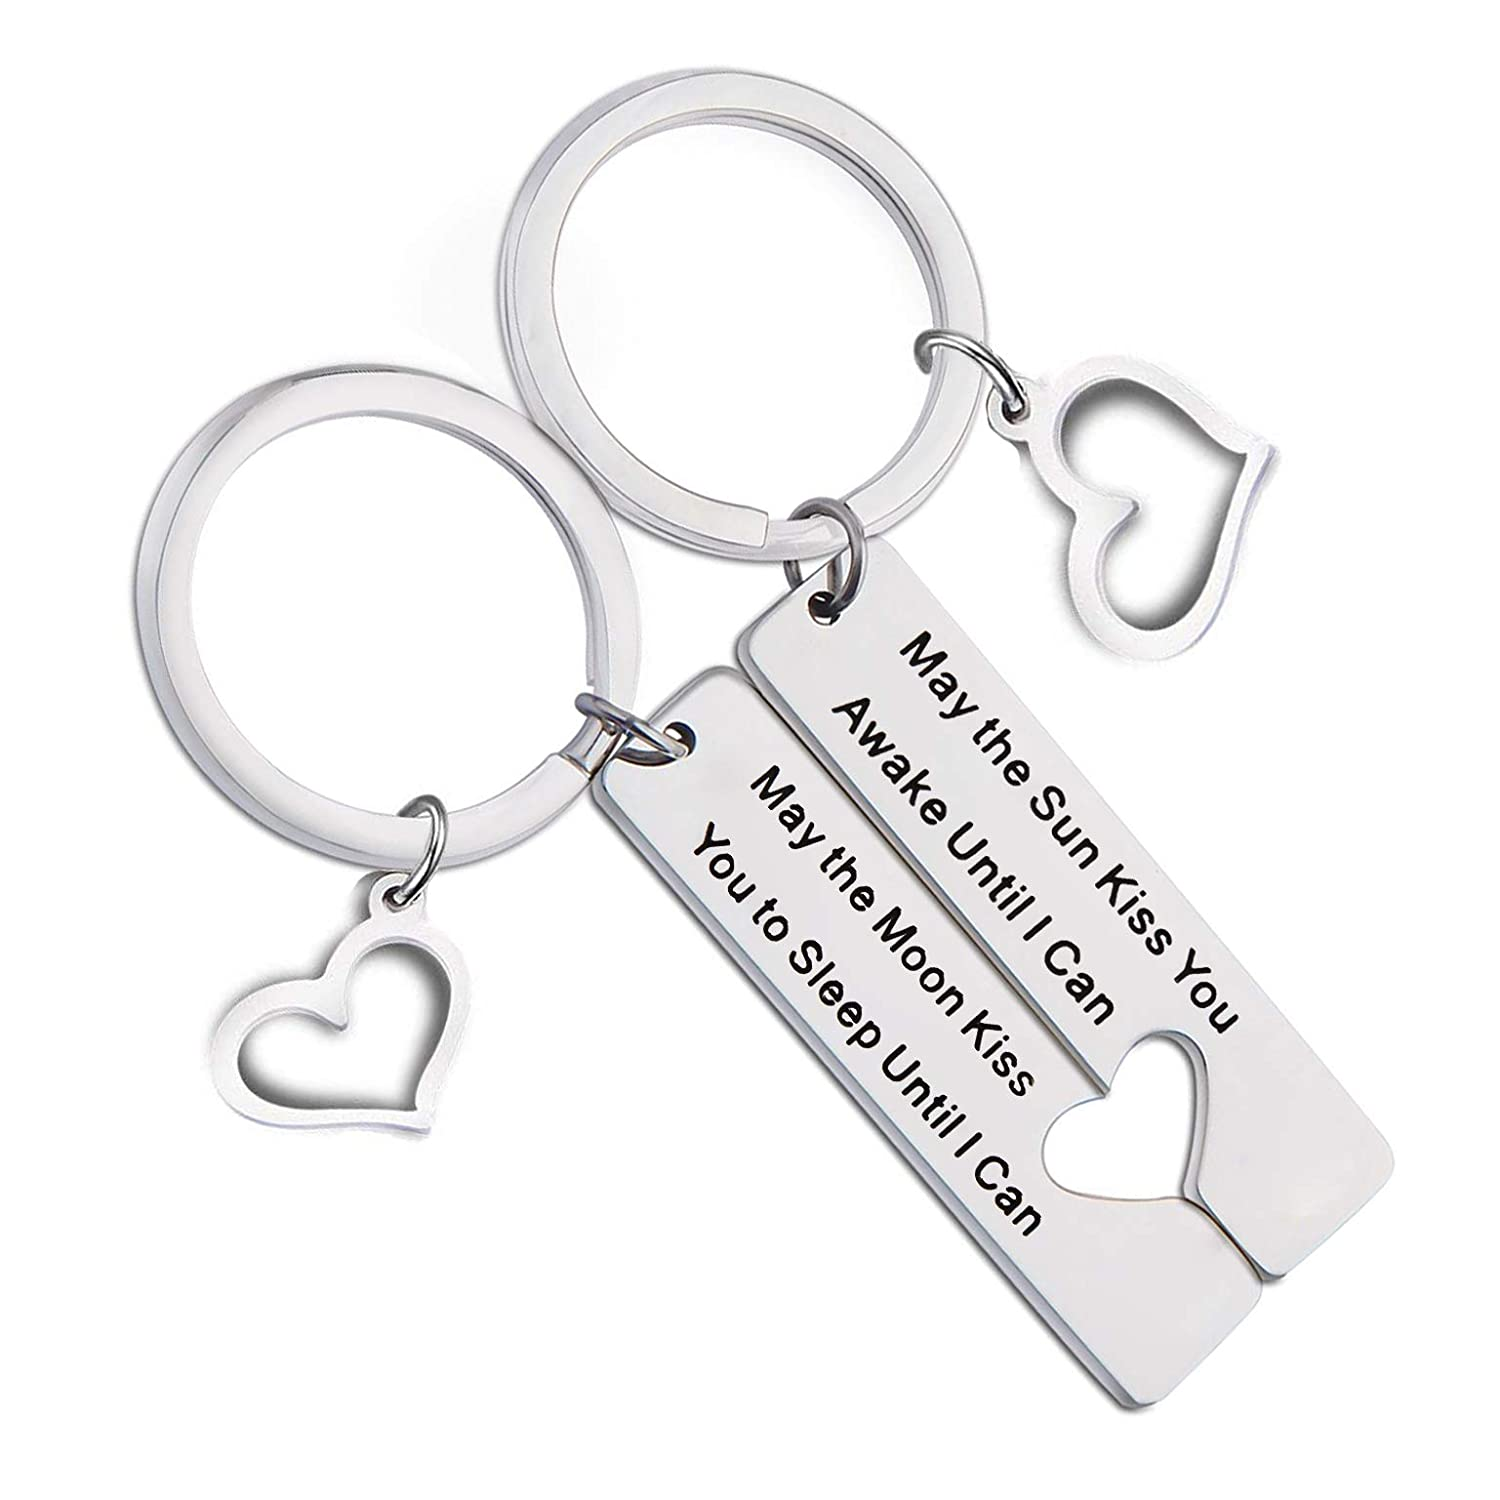 QIIER Couples Keychains Set May the Sun Kiss You Awake Until I Can May the Moon Kiss You to Sleep Until I Can Keychain Set Anniversary B07G31N9NM_US